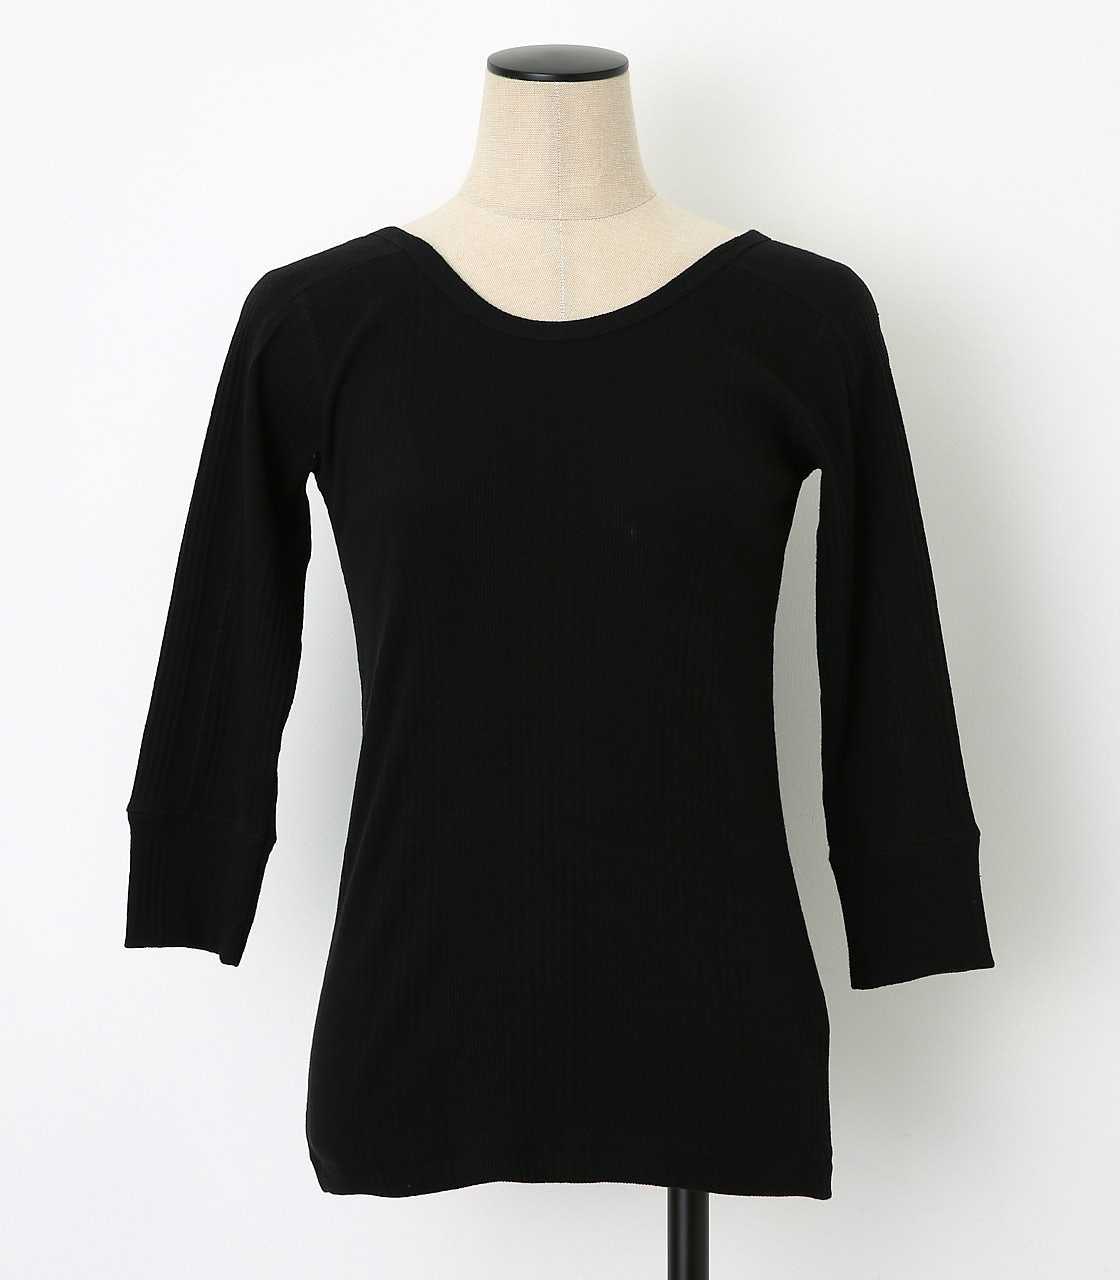 BLACK BY MOUSSY(ブラックバイマウジー) |2way randam rib tops(BLK)